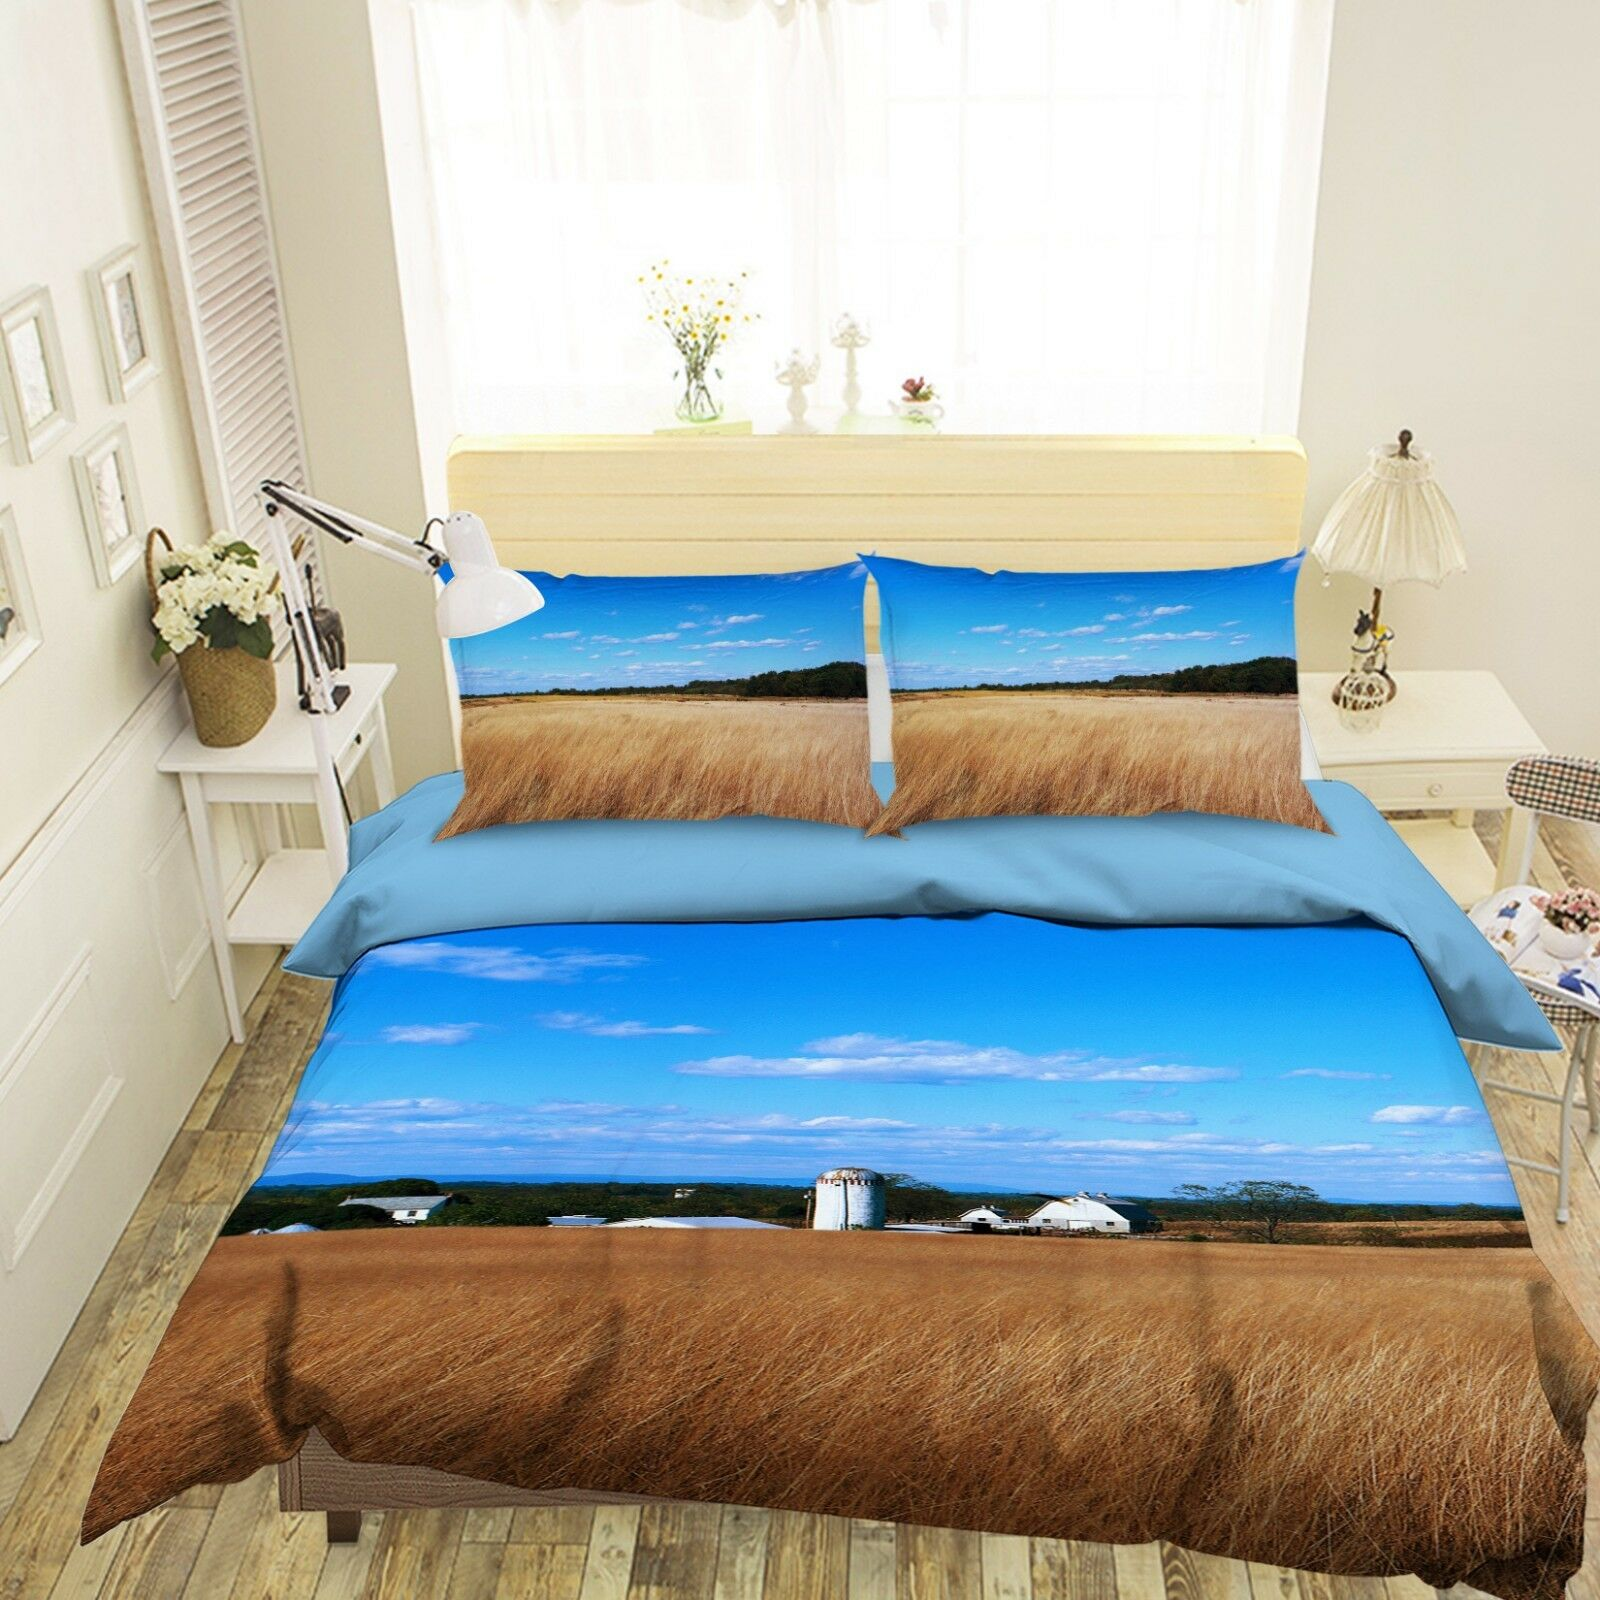 3D Grassland bluee Sky 1 Bed Pillowcases Quilt Duvet Cover Set Single Queen King